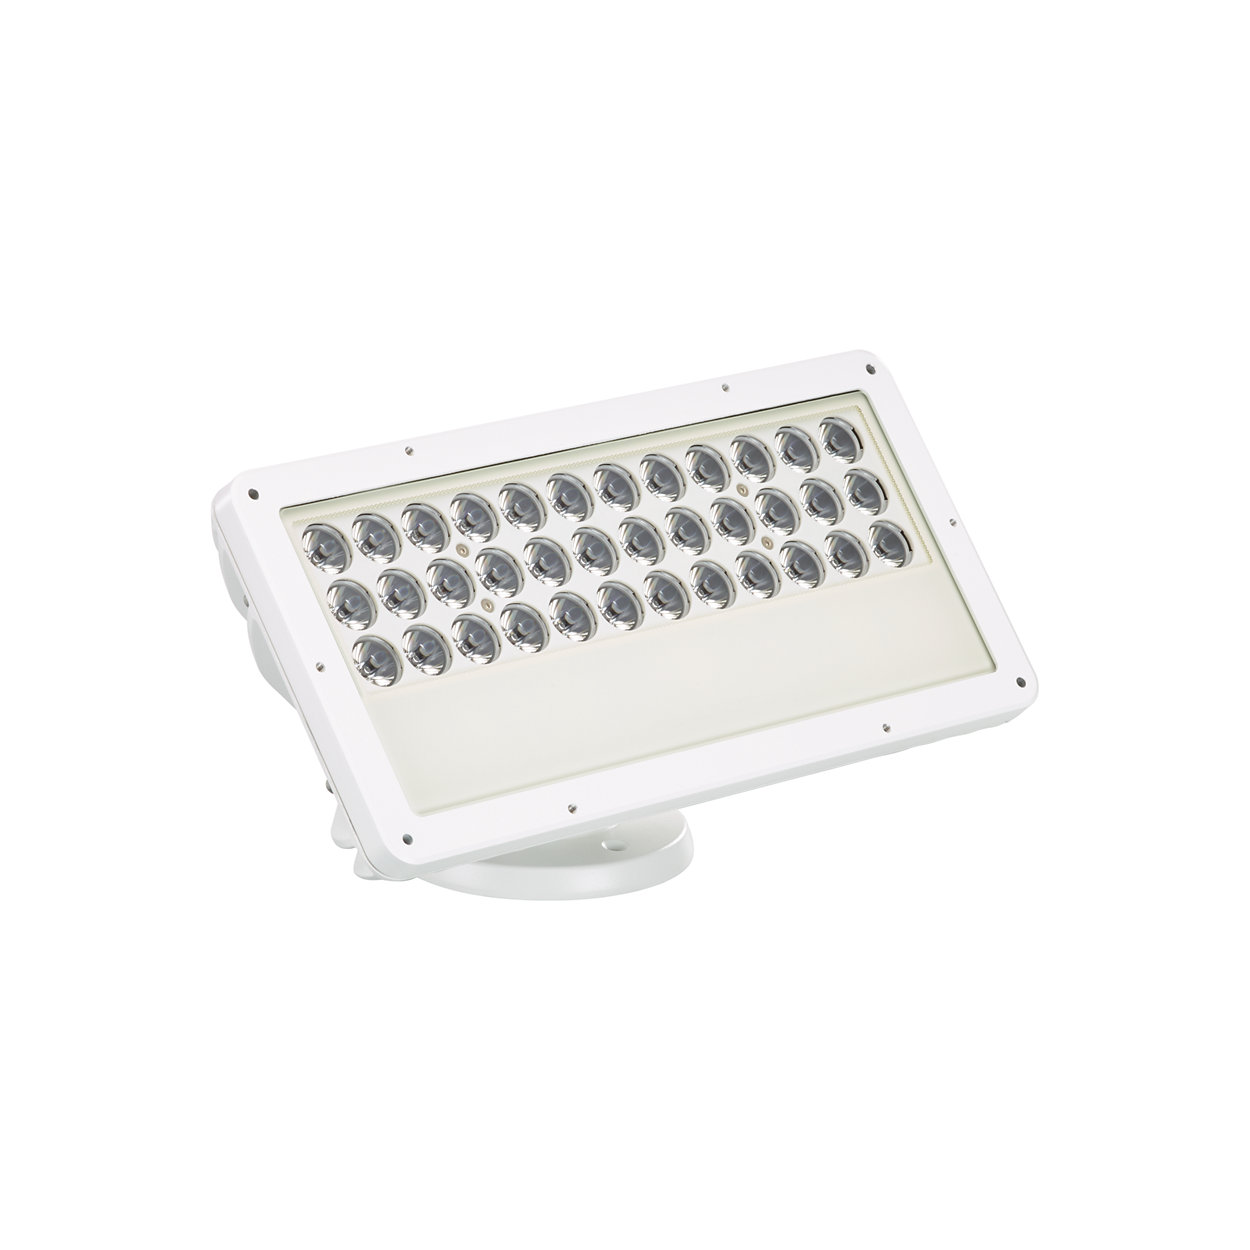 ColorBlast IntelliHue Powercore gen4 - high-quality tunable white light